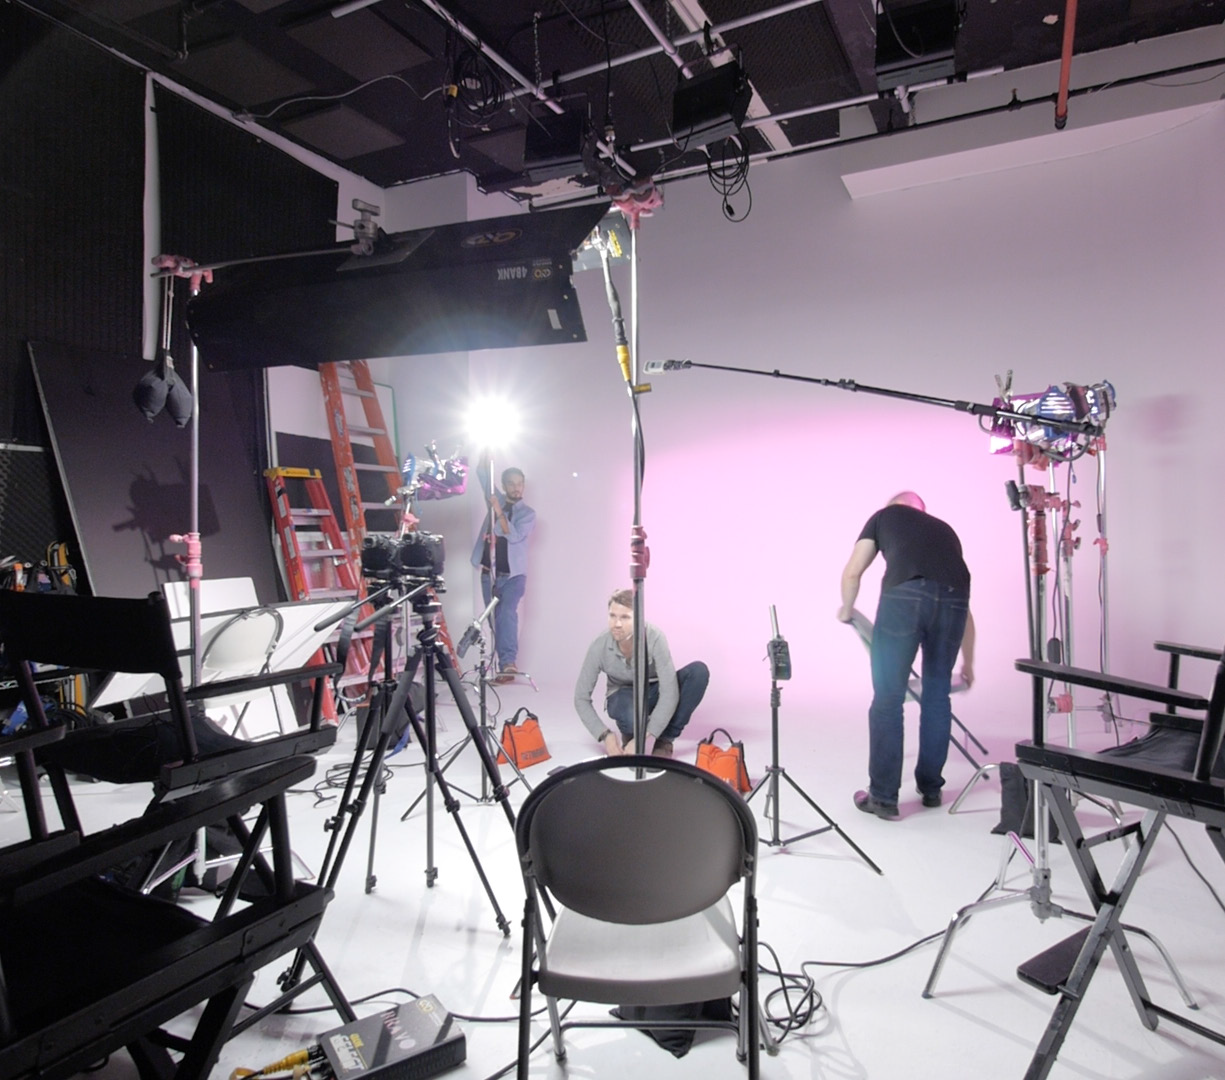 Production Company for Long Island Businesses - Top Notch Cinema - About-us